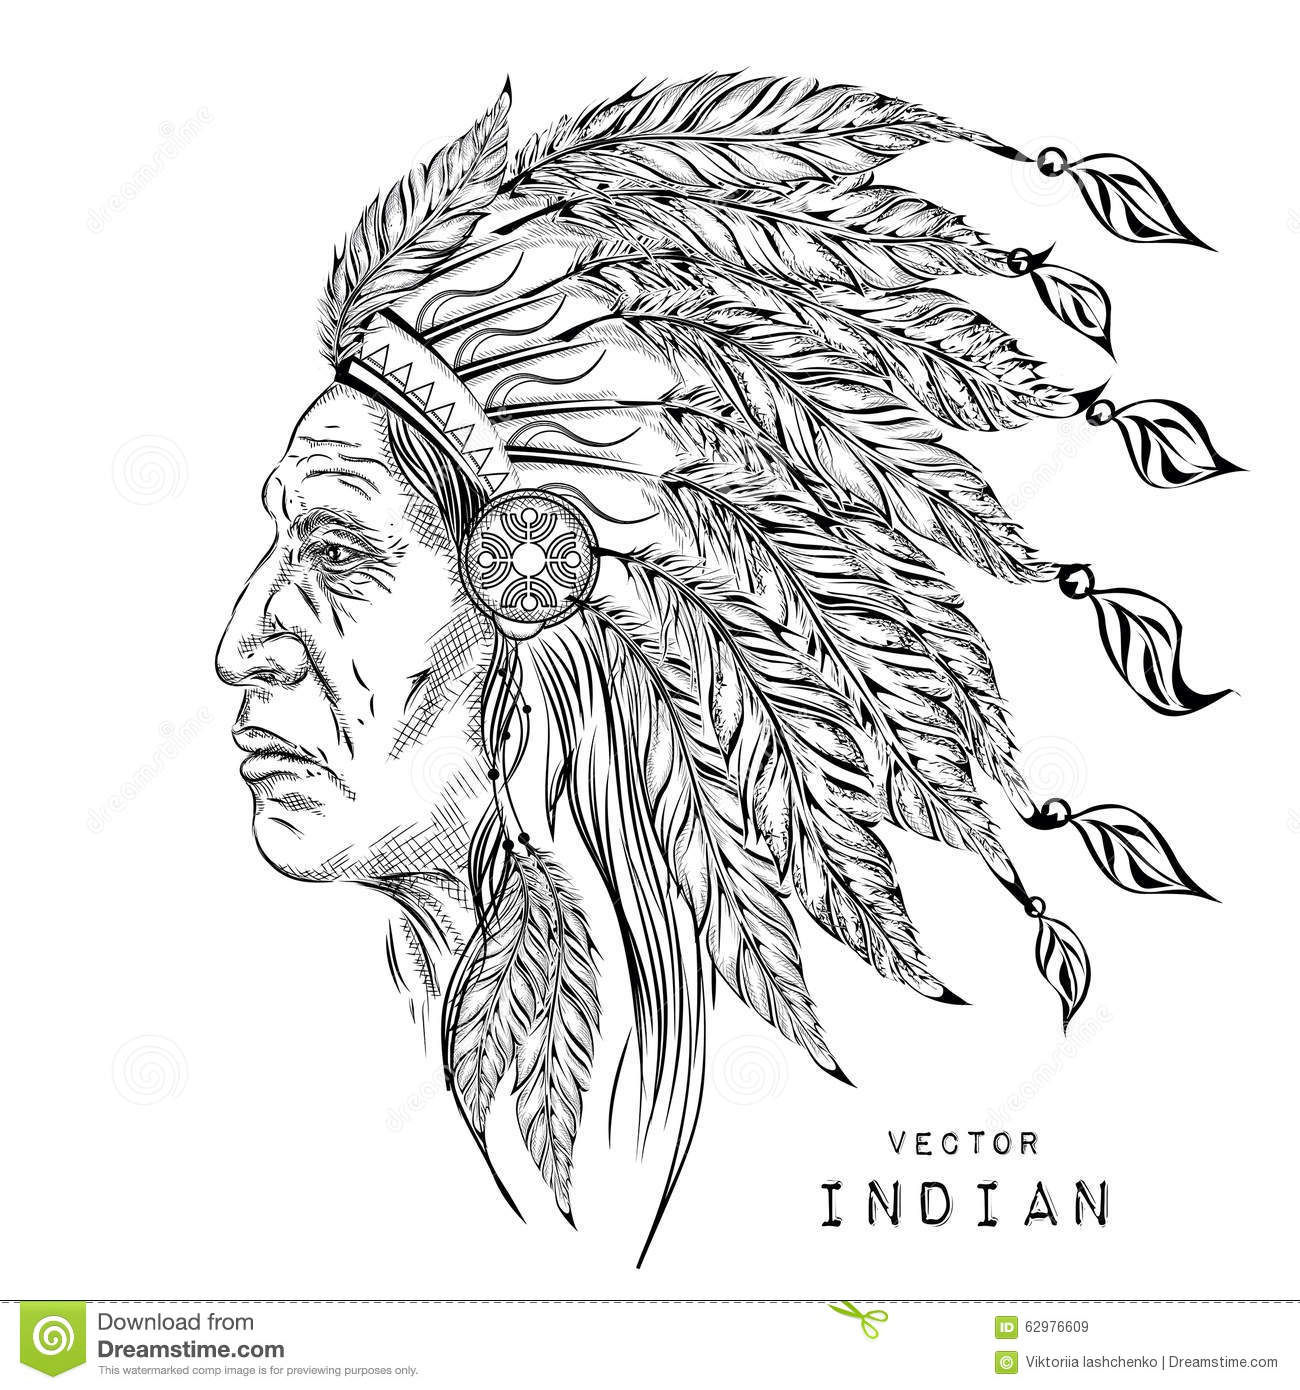 Indian Bride | Adult coloring pages, Coloring pages, Free coloring ... | 1390x1300